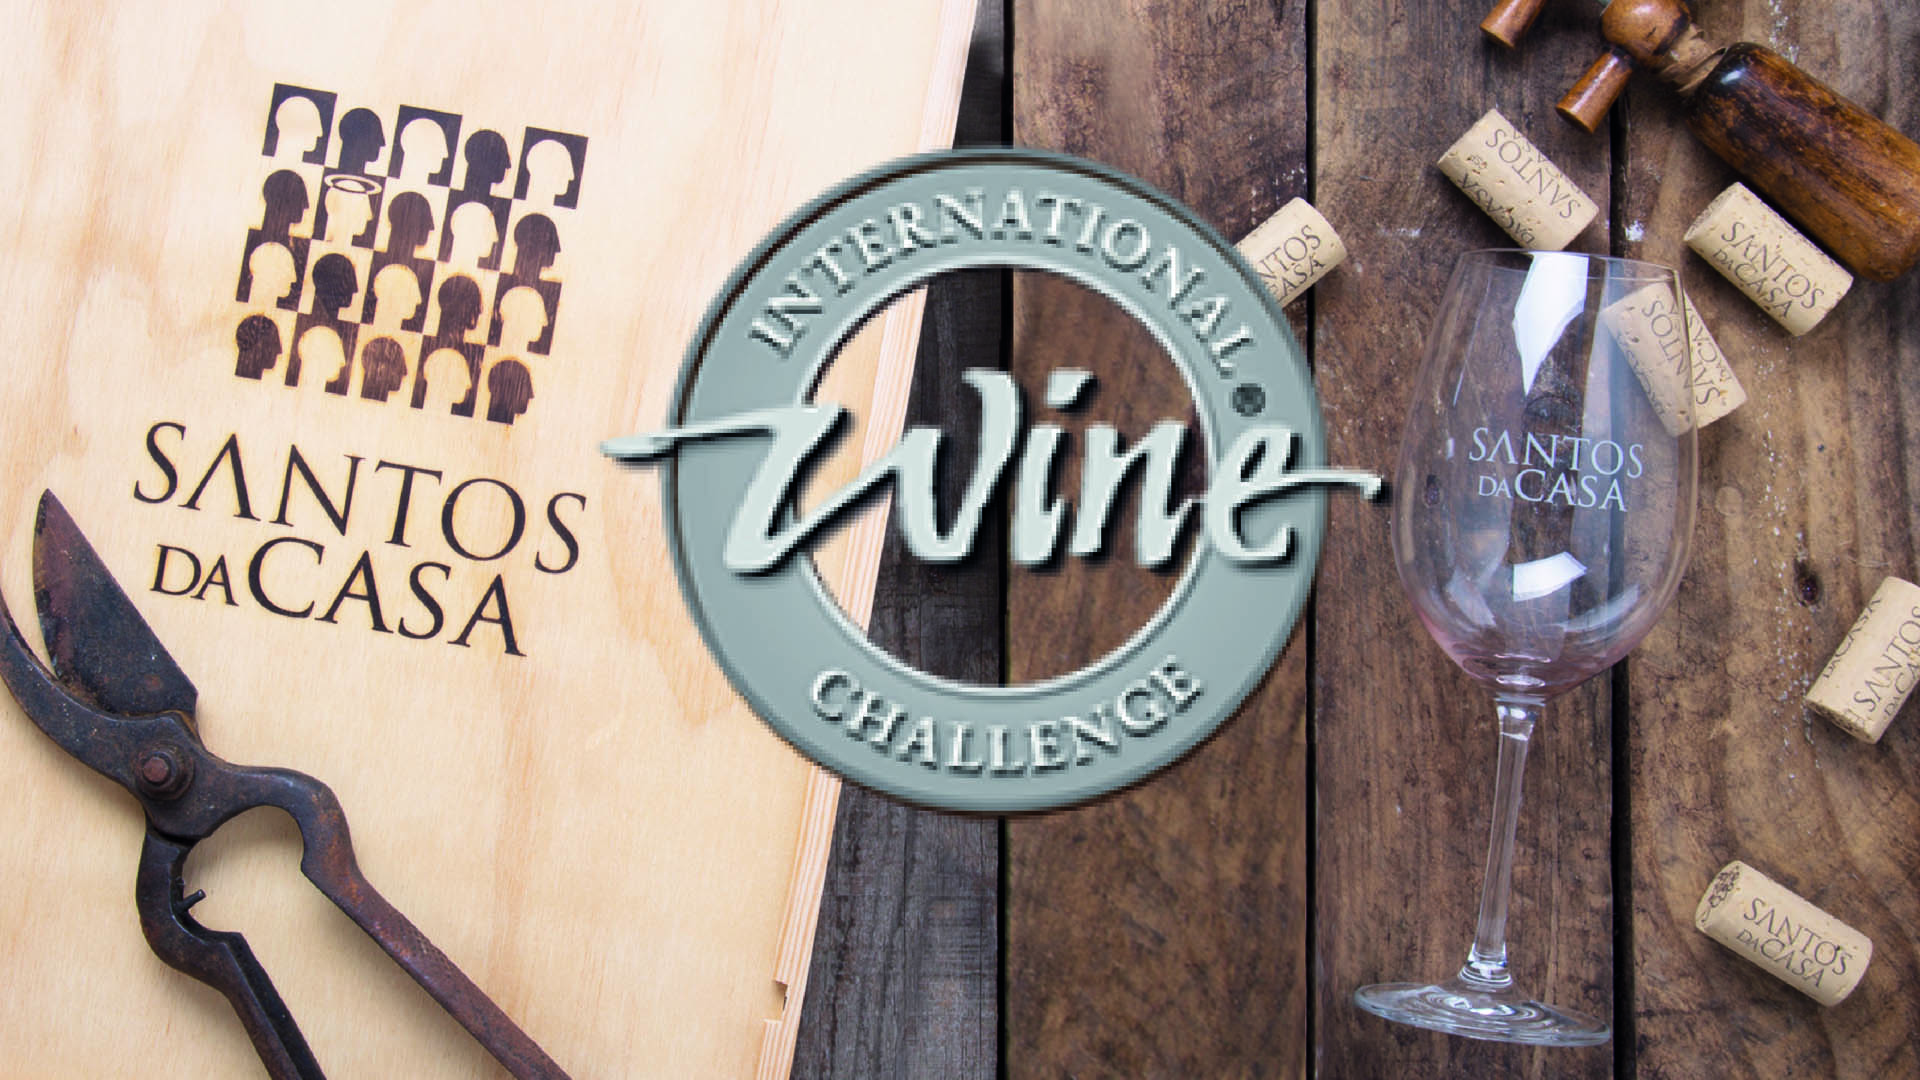 4 Medalhas no International Wine Challenge